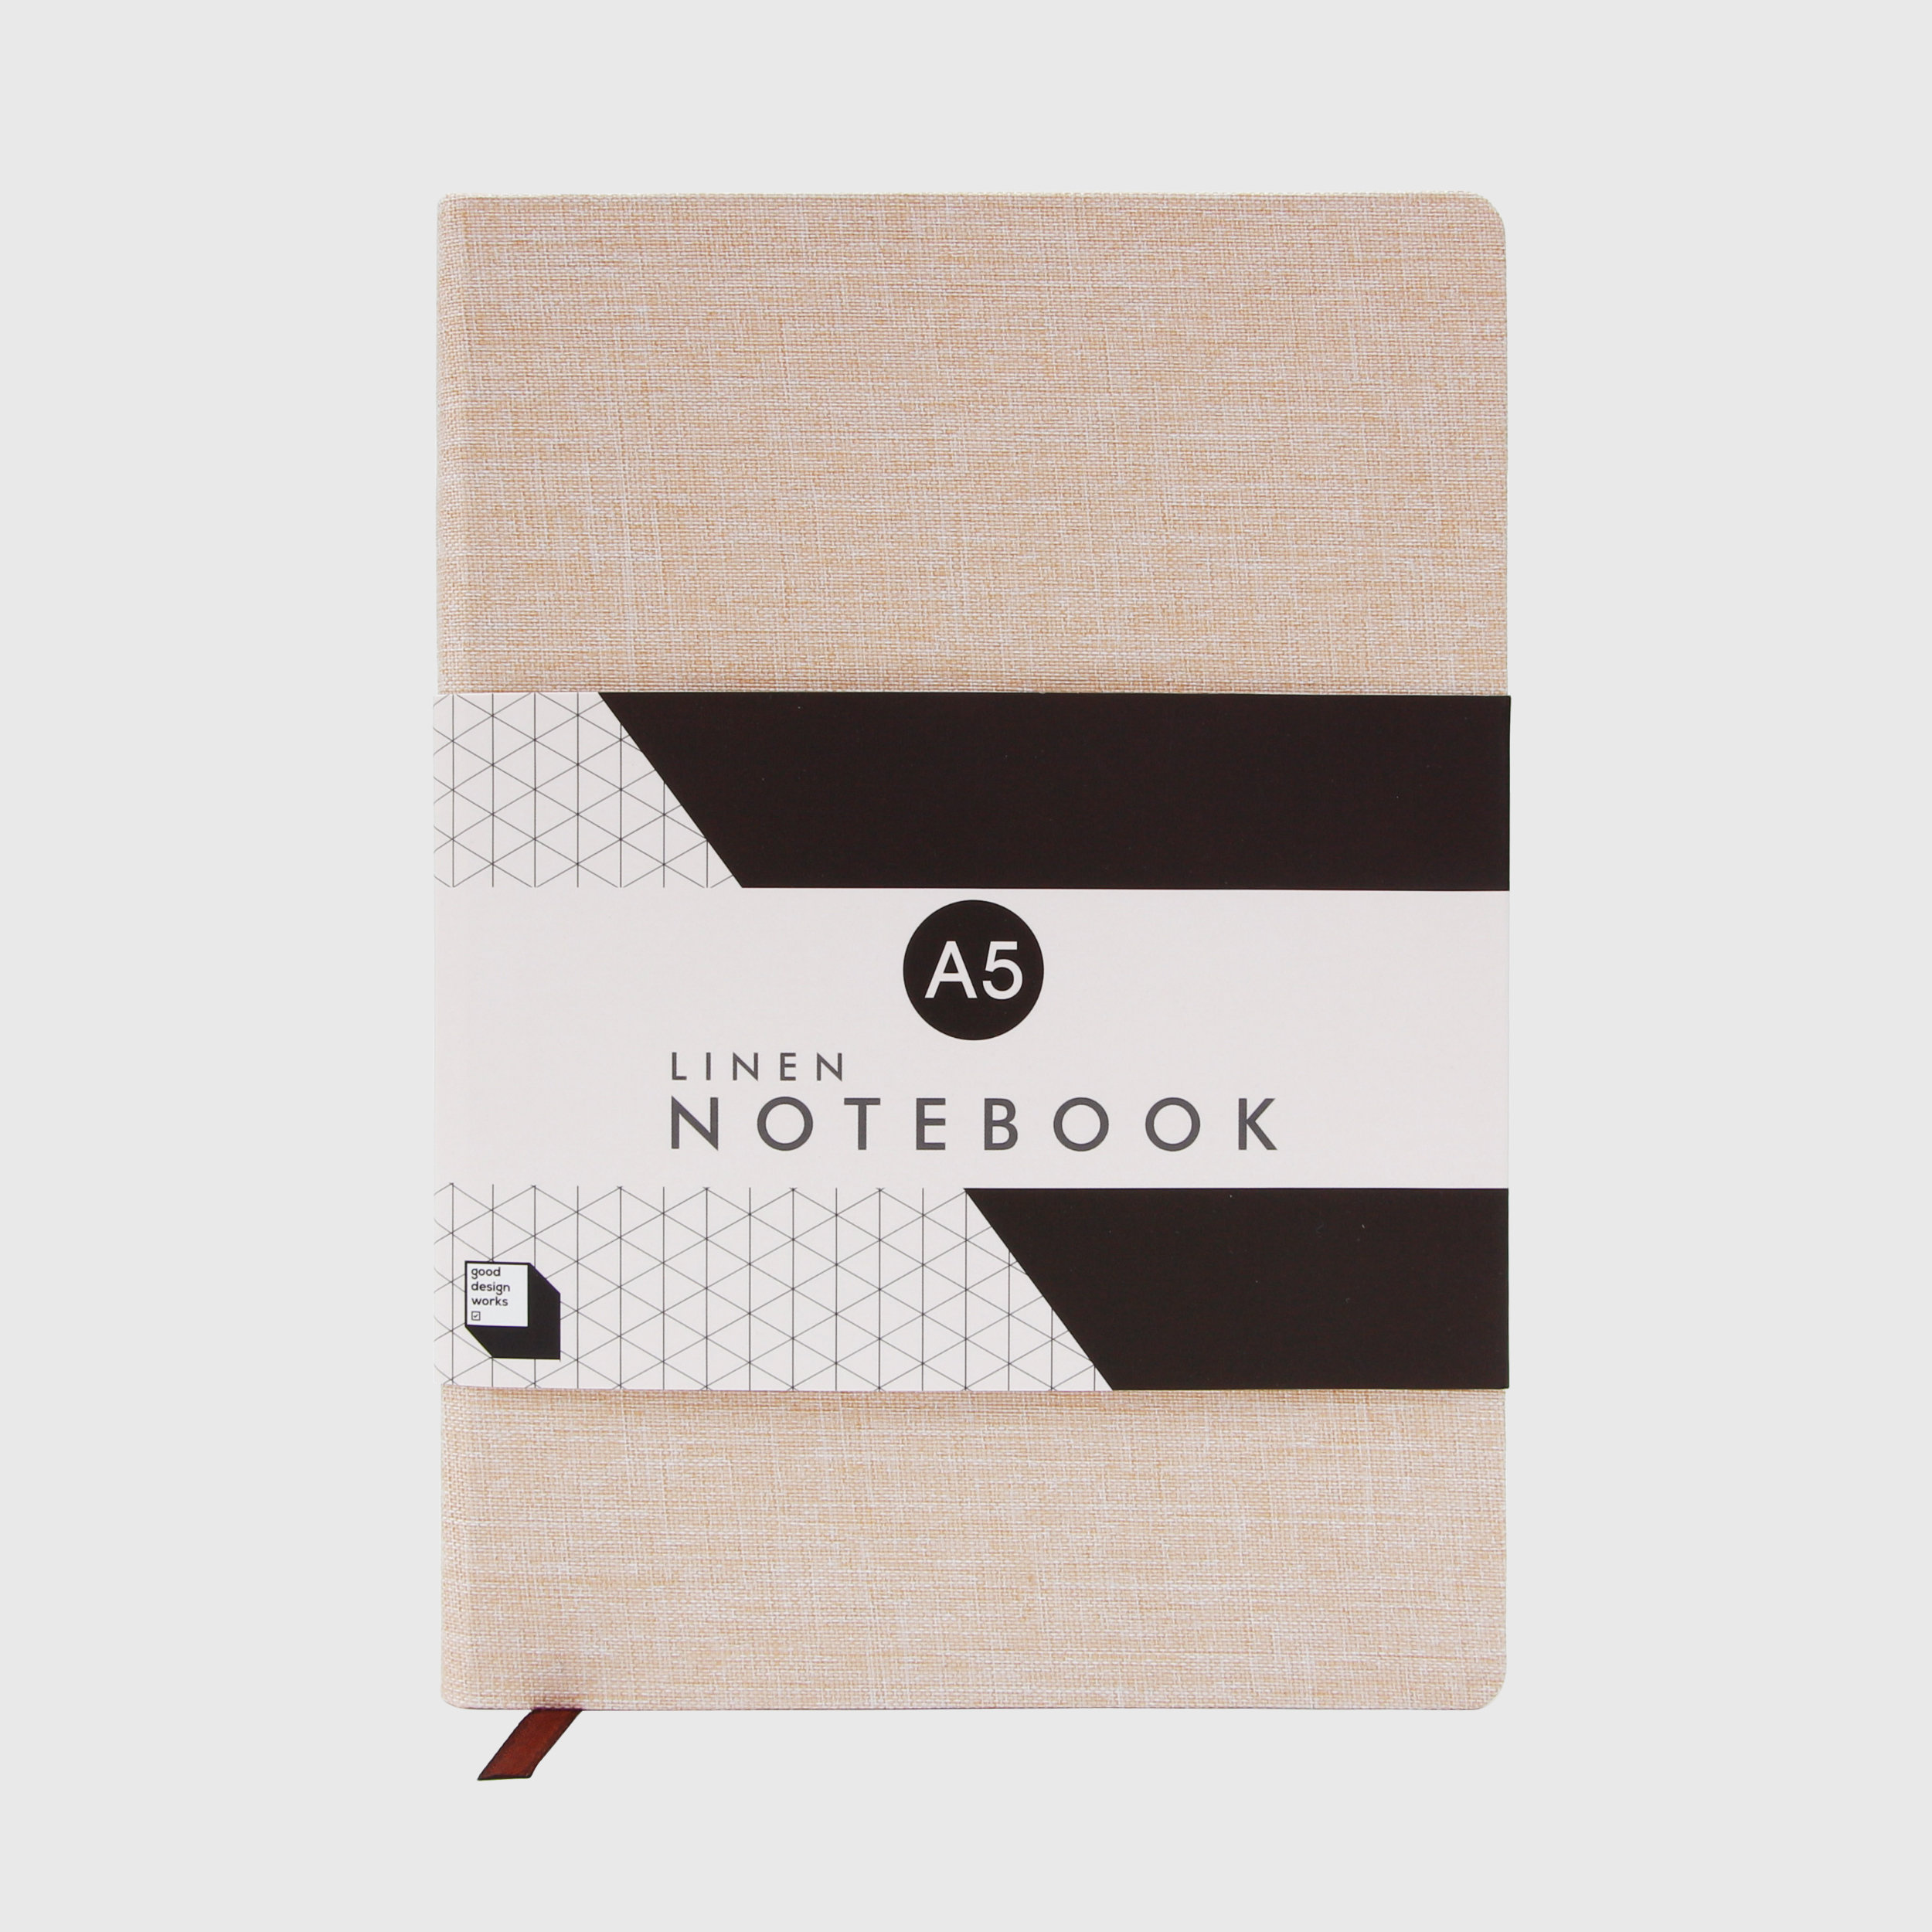 Linen notebook in stone